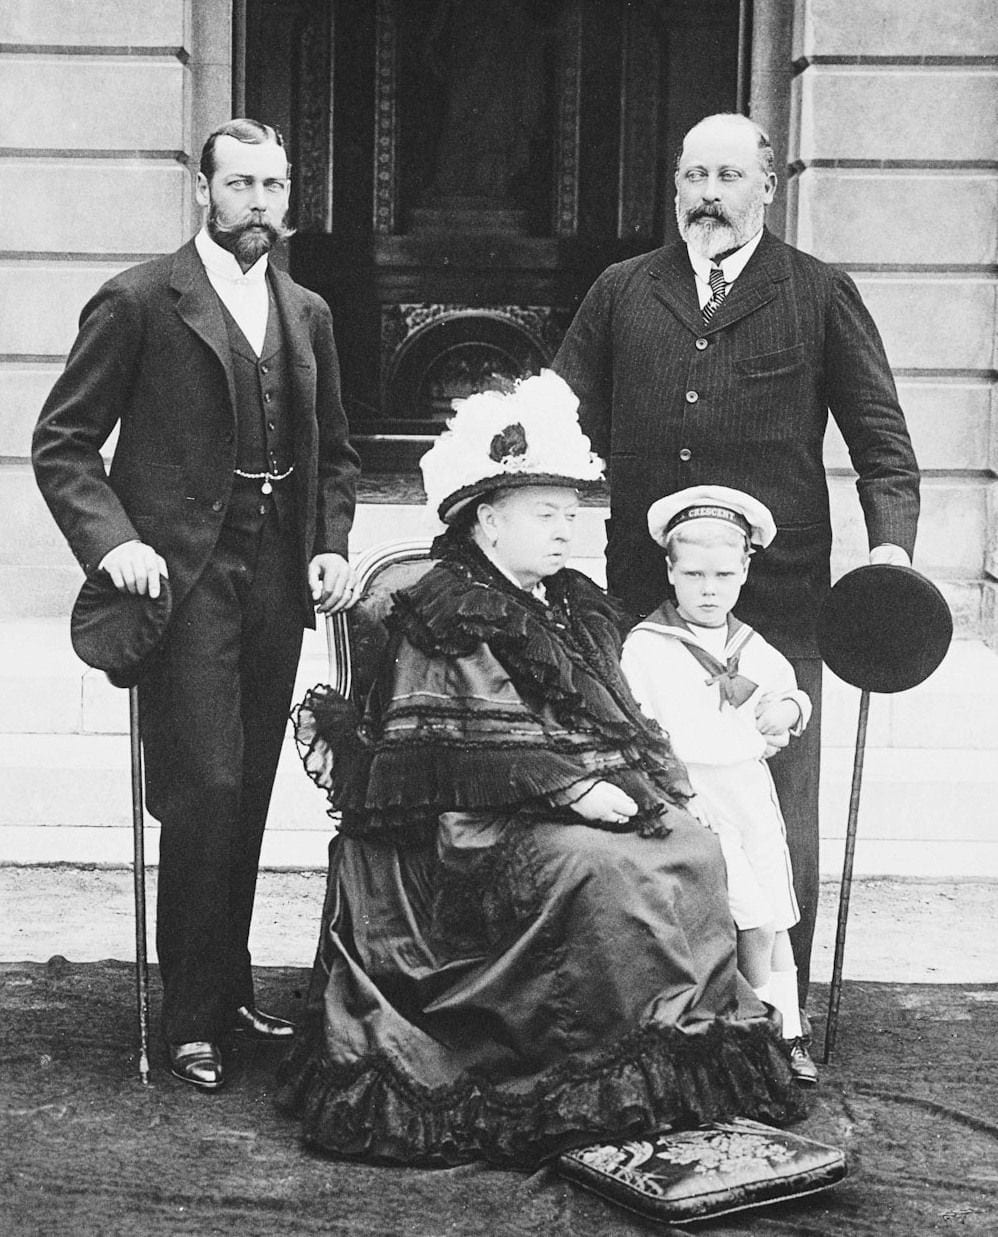 queen victoria king edward vii king george v king edward viii british royal family royalty historical photos